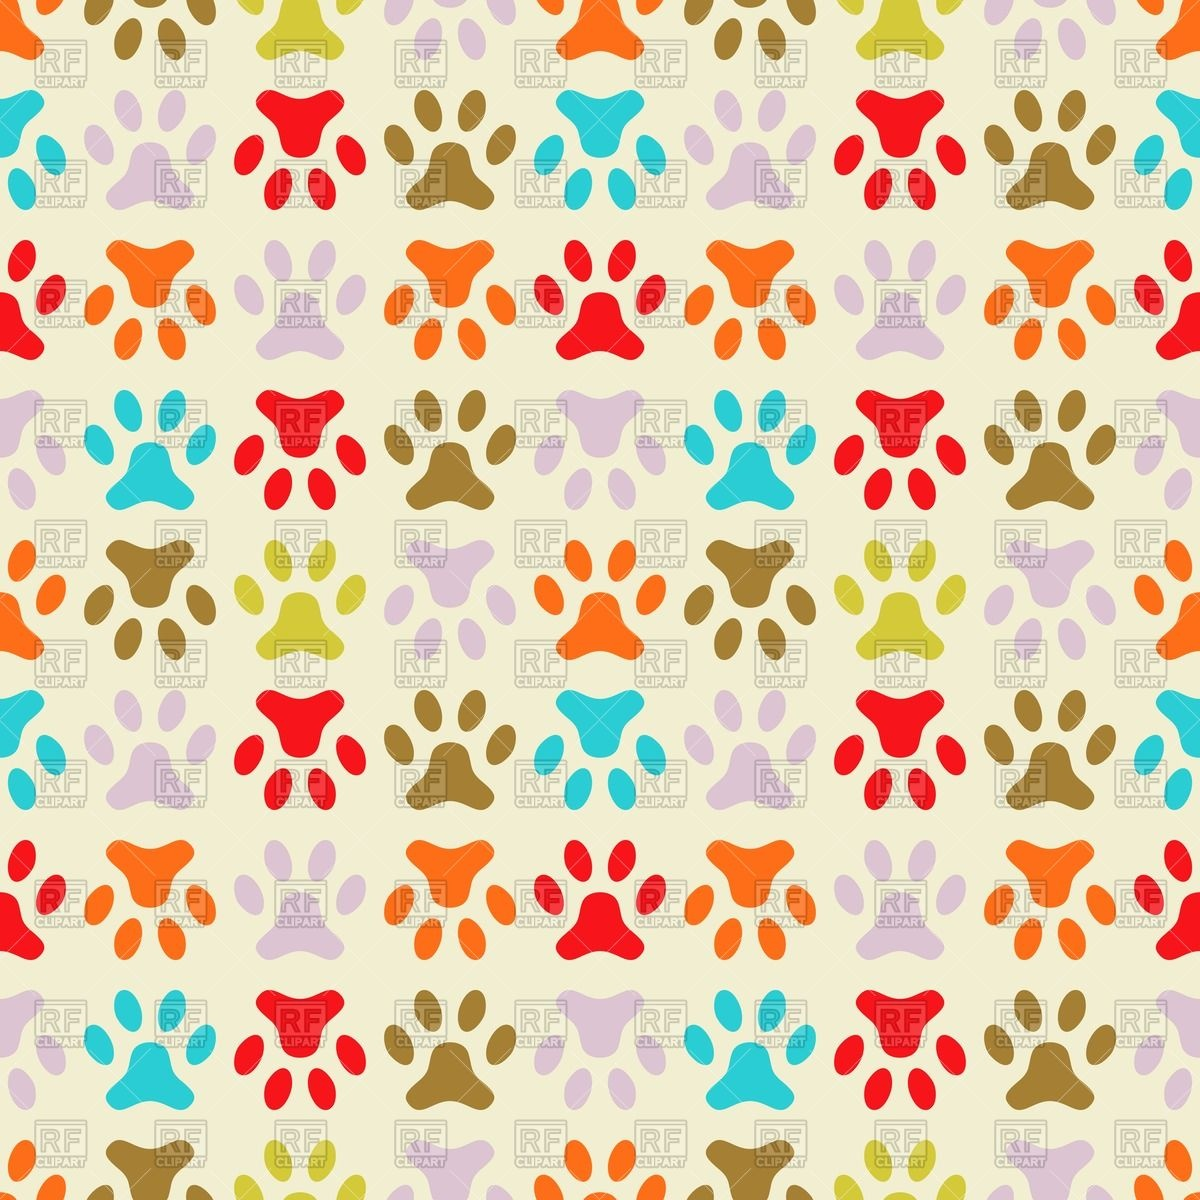 Wallpaper With Dog S Paw Prints Download Royalty Free Vector Clipart